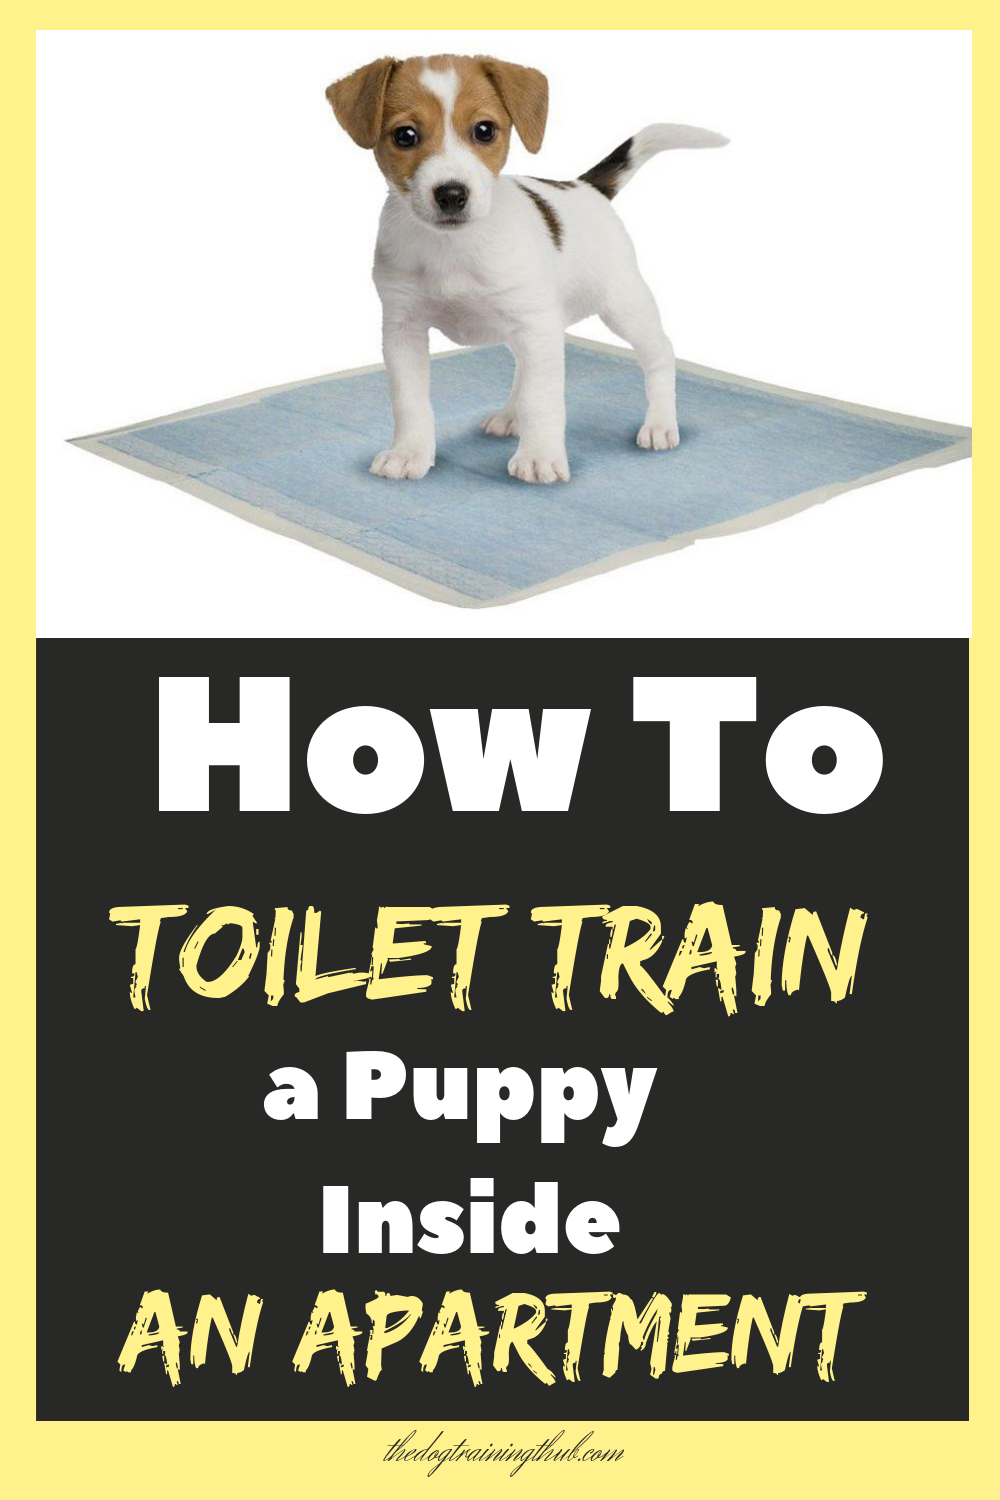 9 Puppy Toilet Training Tips To House Train Your Dog With Images